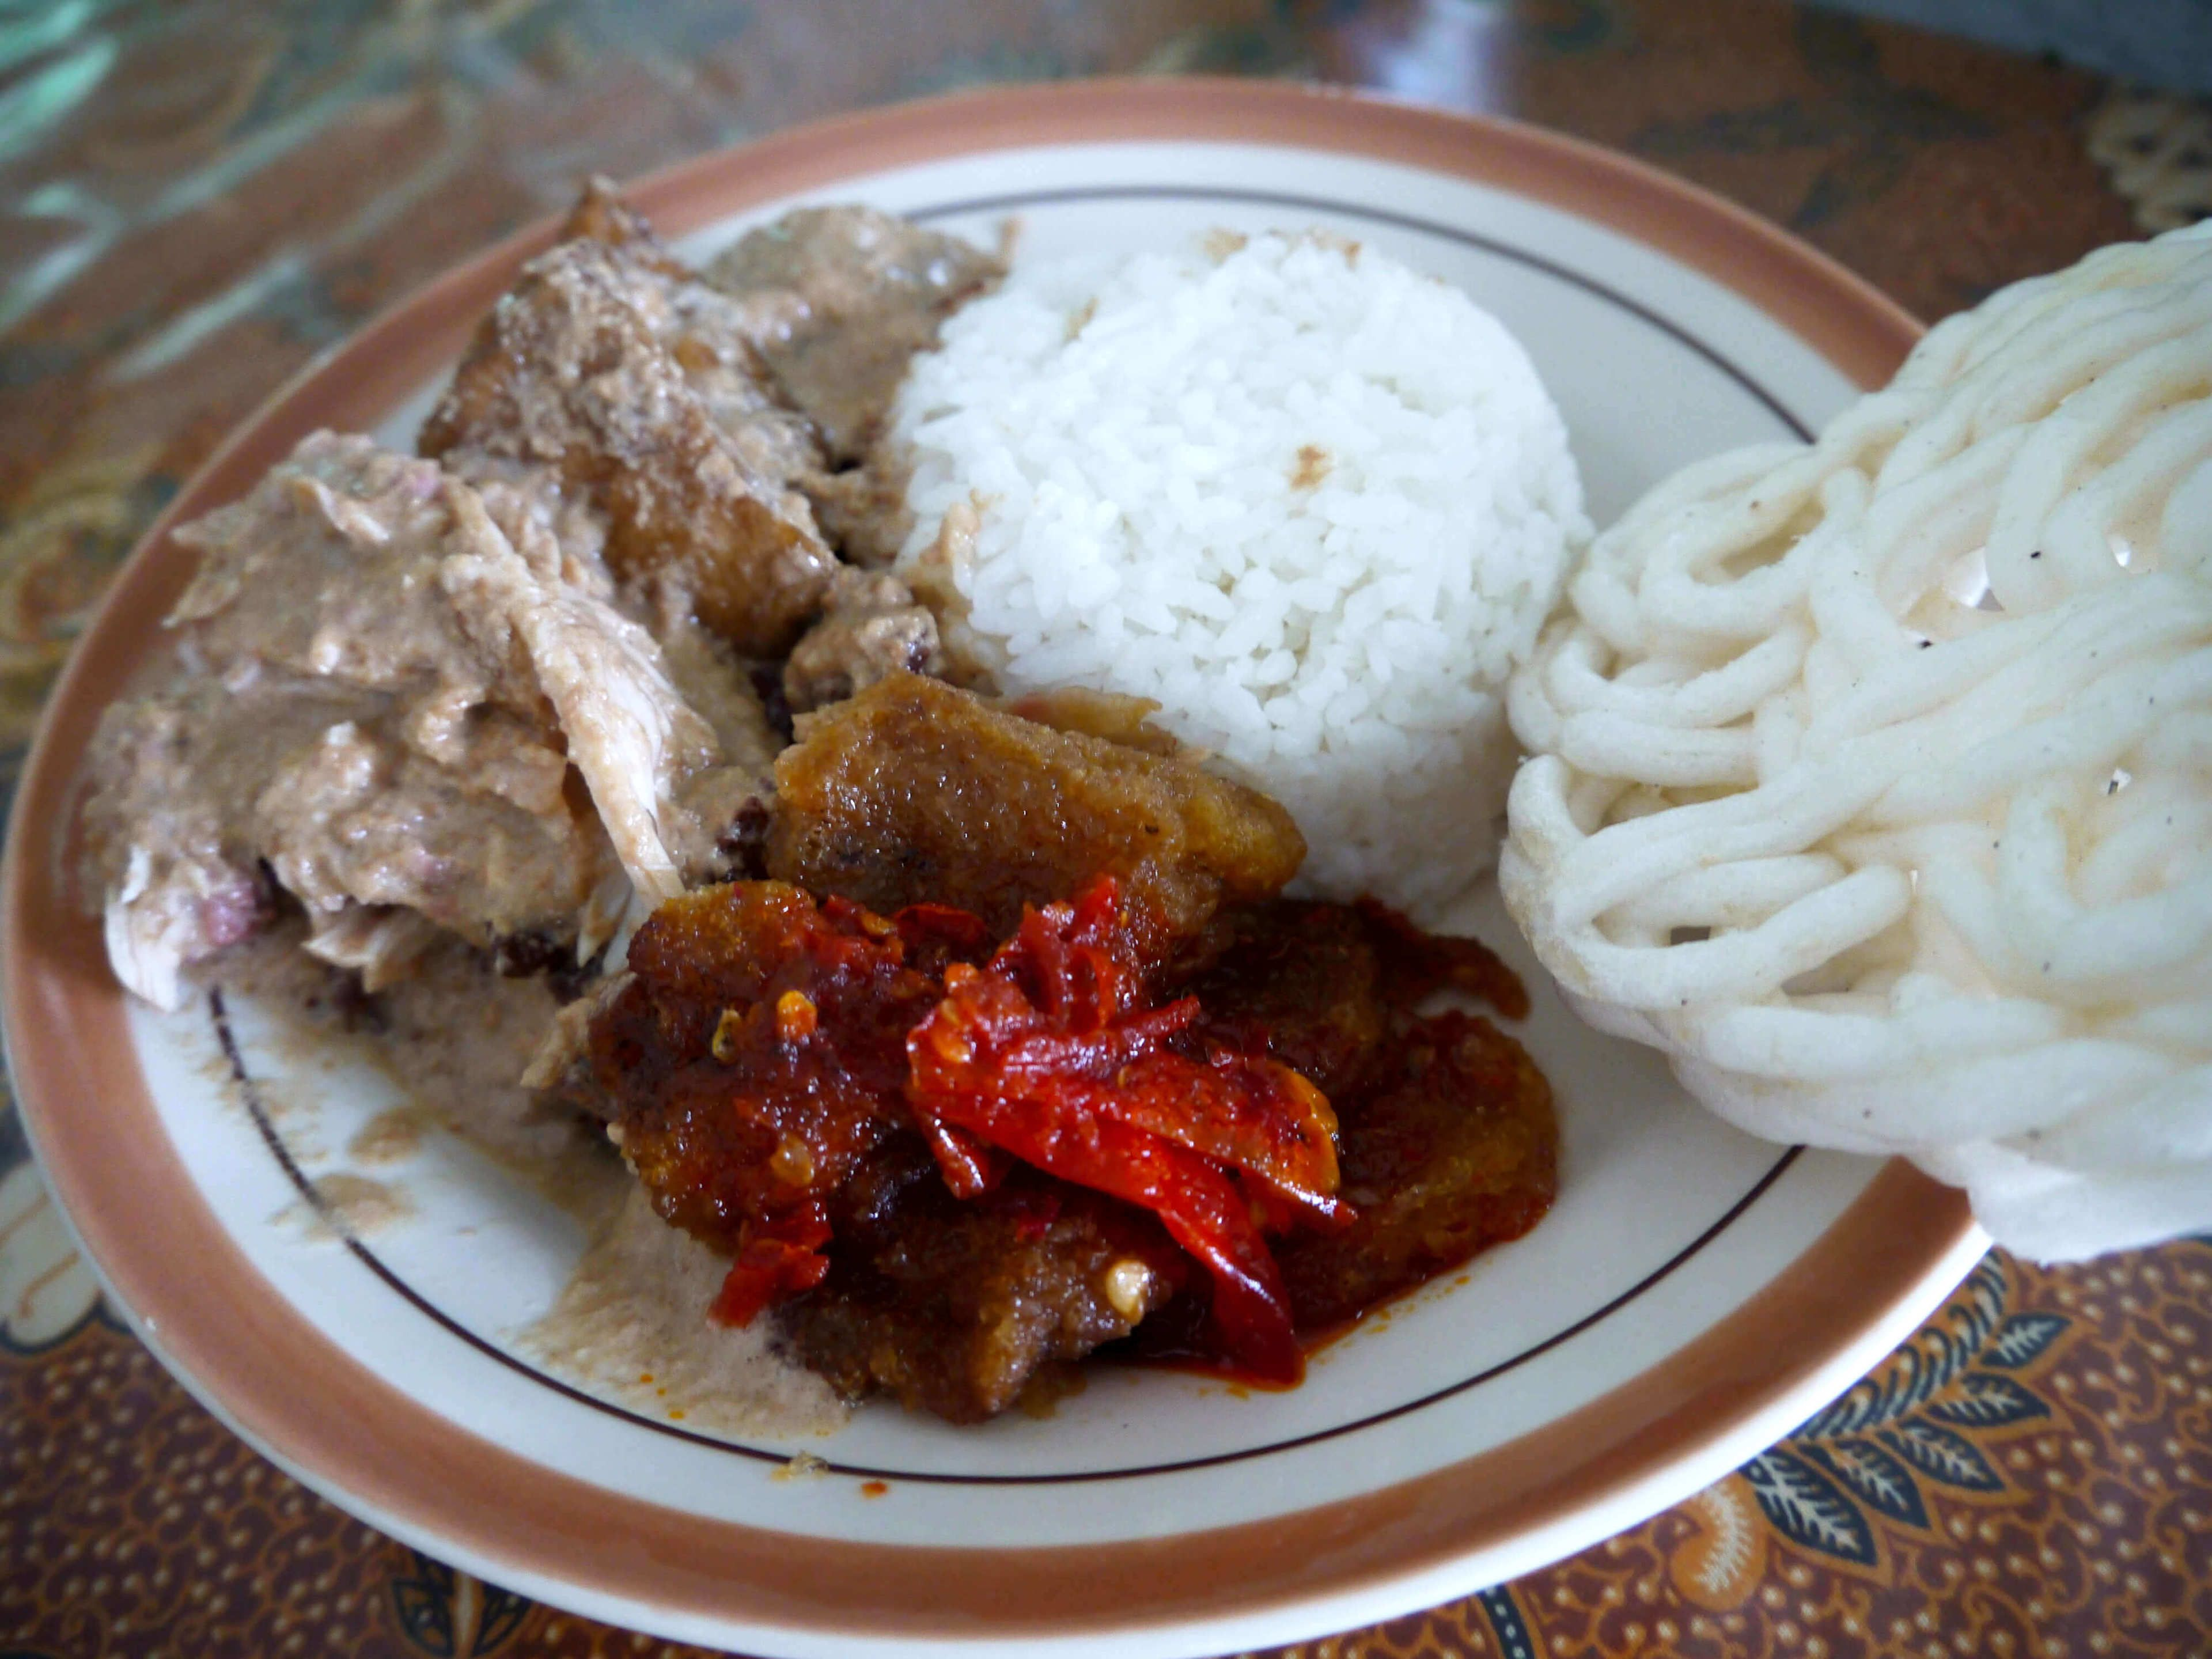 An Indonesian dish of meat in gravy, rice. noodles, and chilies